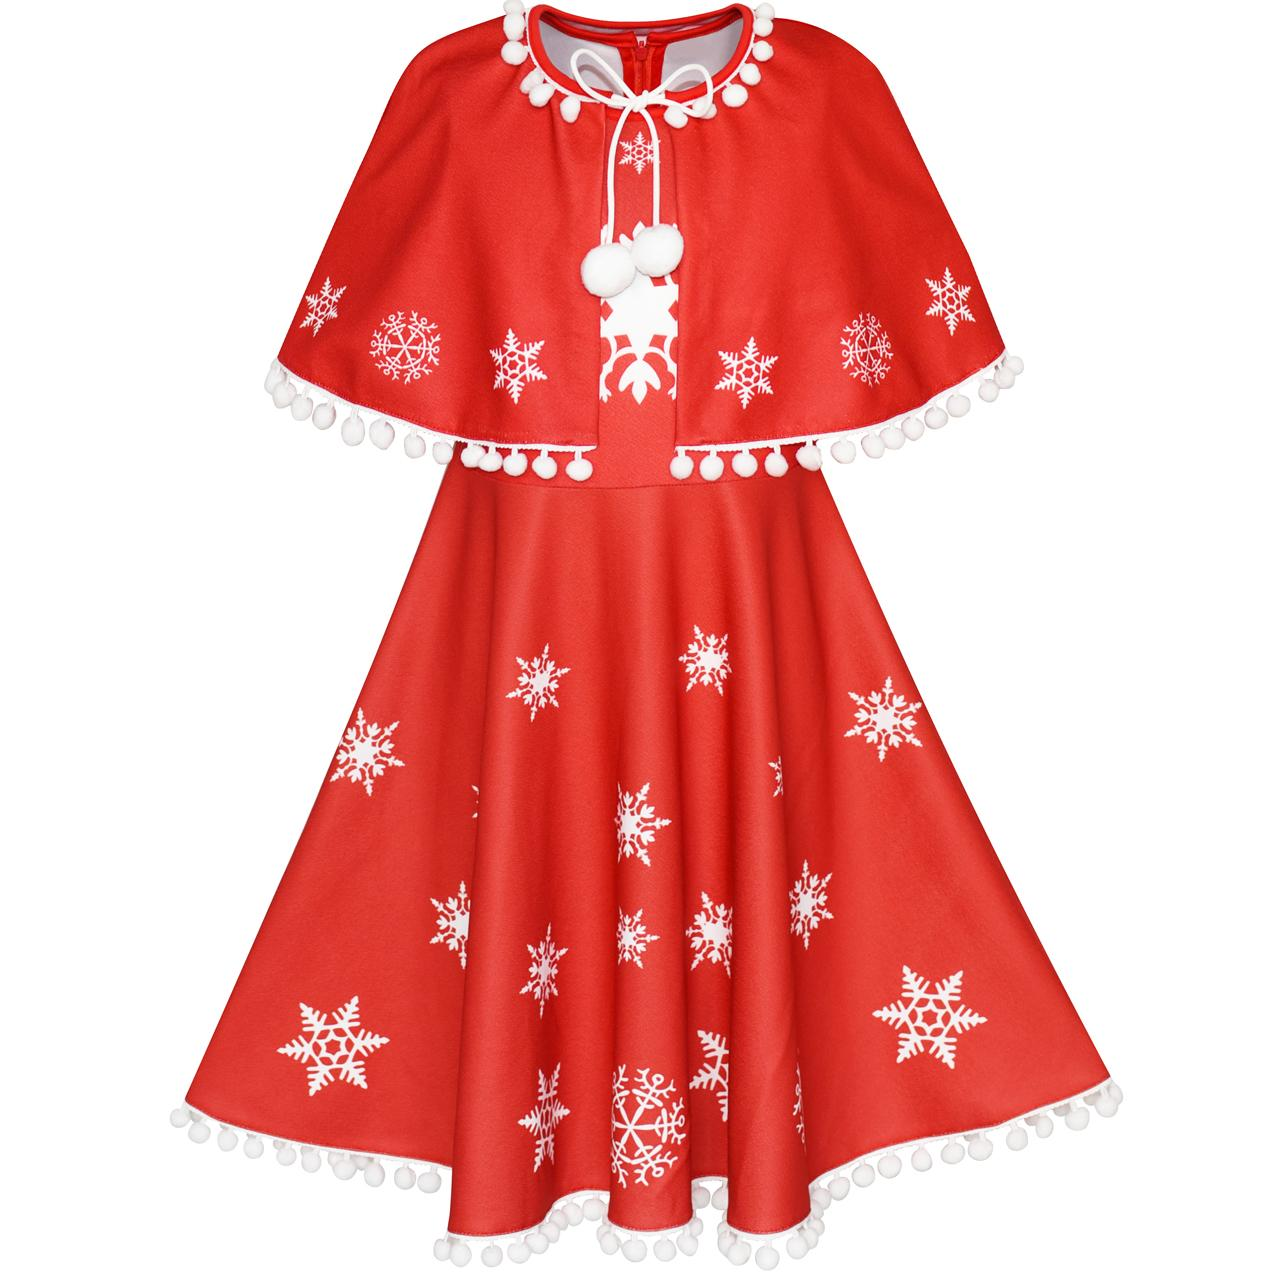 Sunny Fashion Flower Girl Dress Red Cape Cloak Christmas Year Holiday Party 2018 Summer Princess Wedding Dresses Size 4-14 sunny fashion girls dress princess worsted winter christmas hat lace red 2018 summer wedding party dresses clothes size 4 10